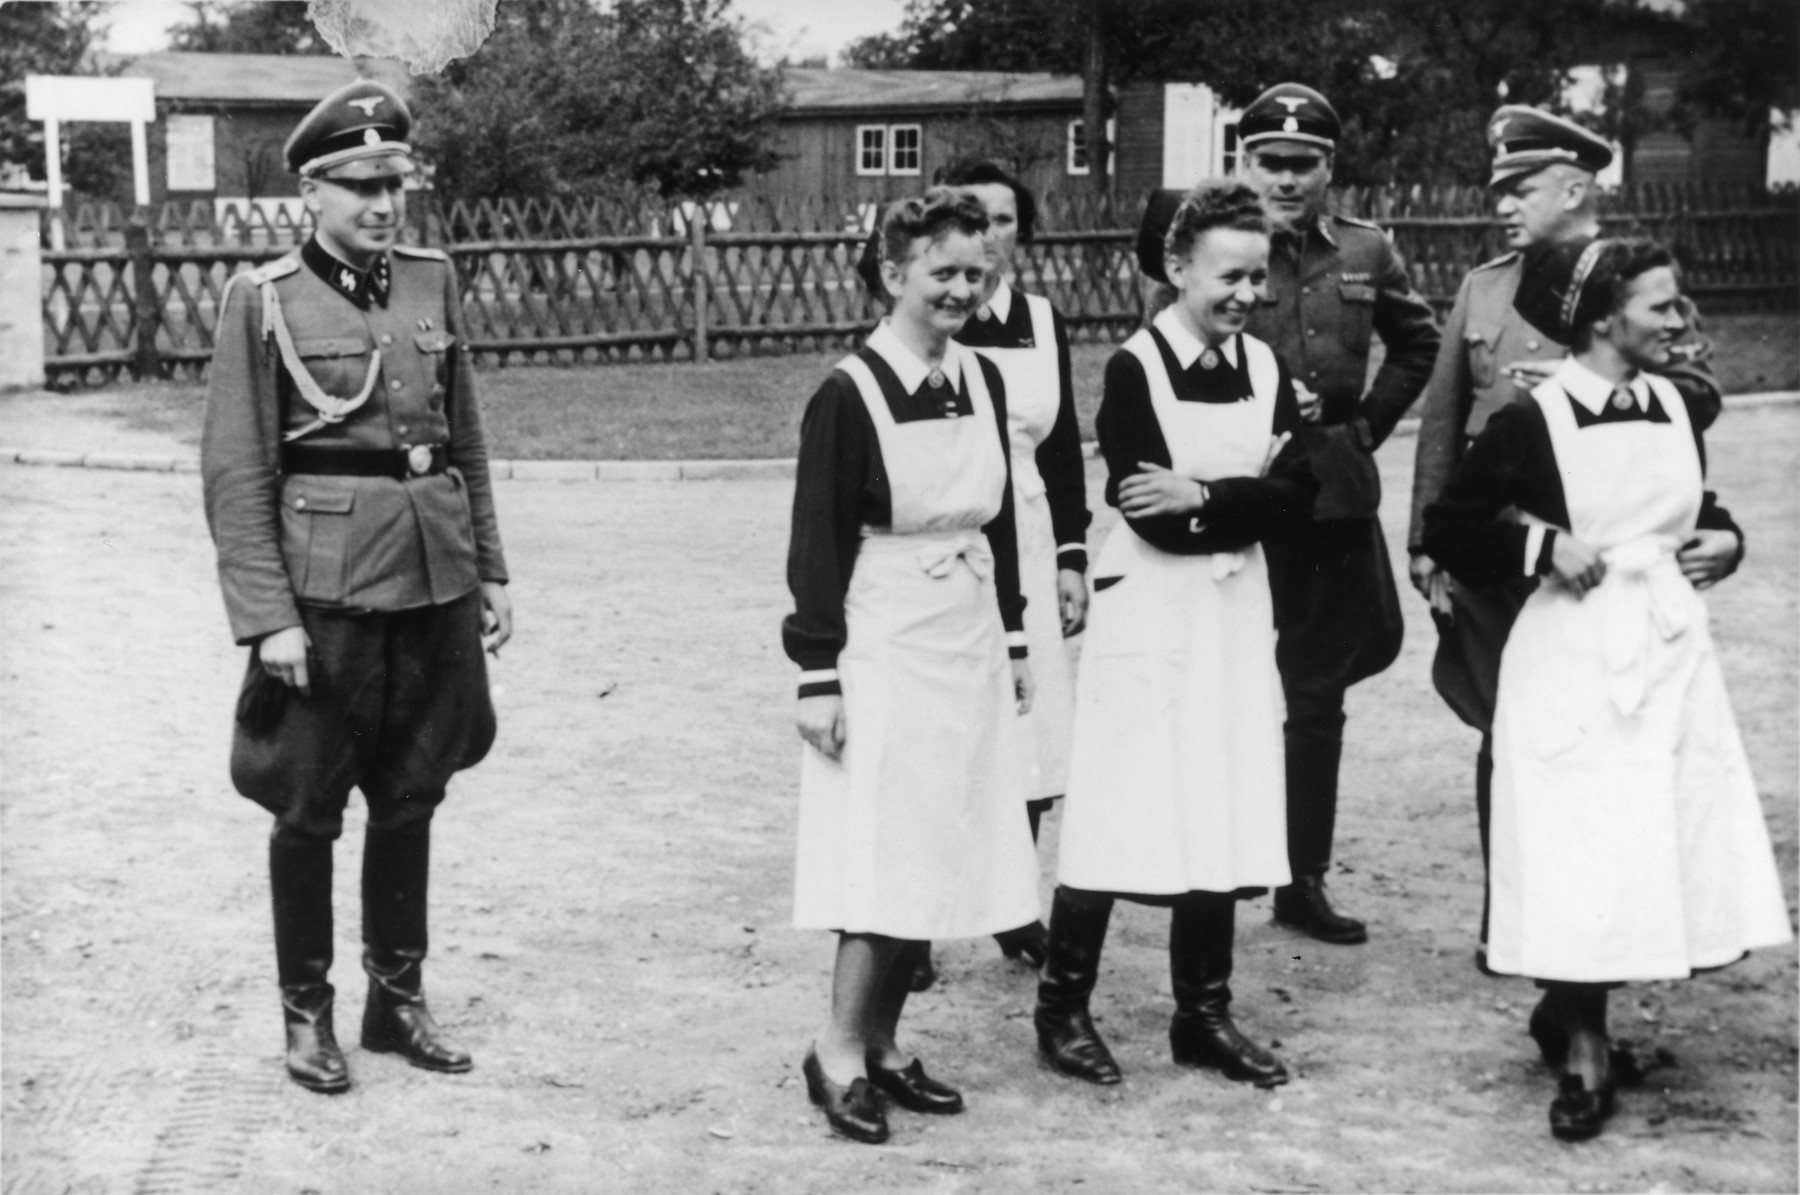 SS officers and German nurses gather during the dedication ceremony of the new SS hospital in Auschwitz.  Among those pictured are Karl Hoecker, Josef Kramer and SS-Hauptsturmfuhrer Heinrich Schwarz.  Among the nurses probably are Martha Mzyk and Lotte Nitschke.